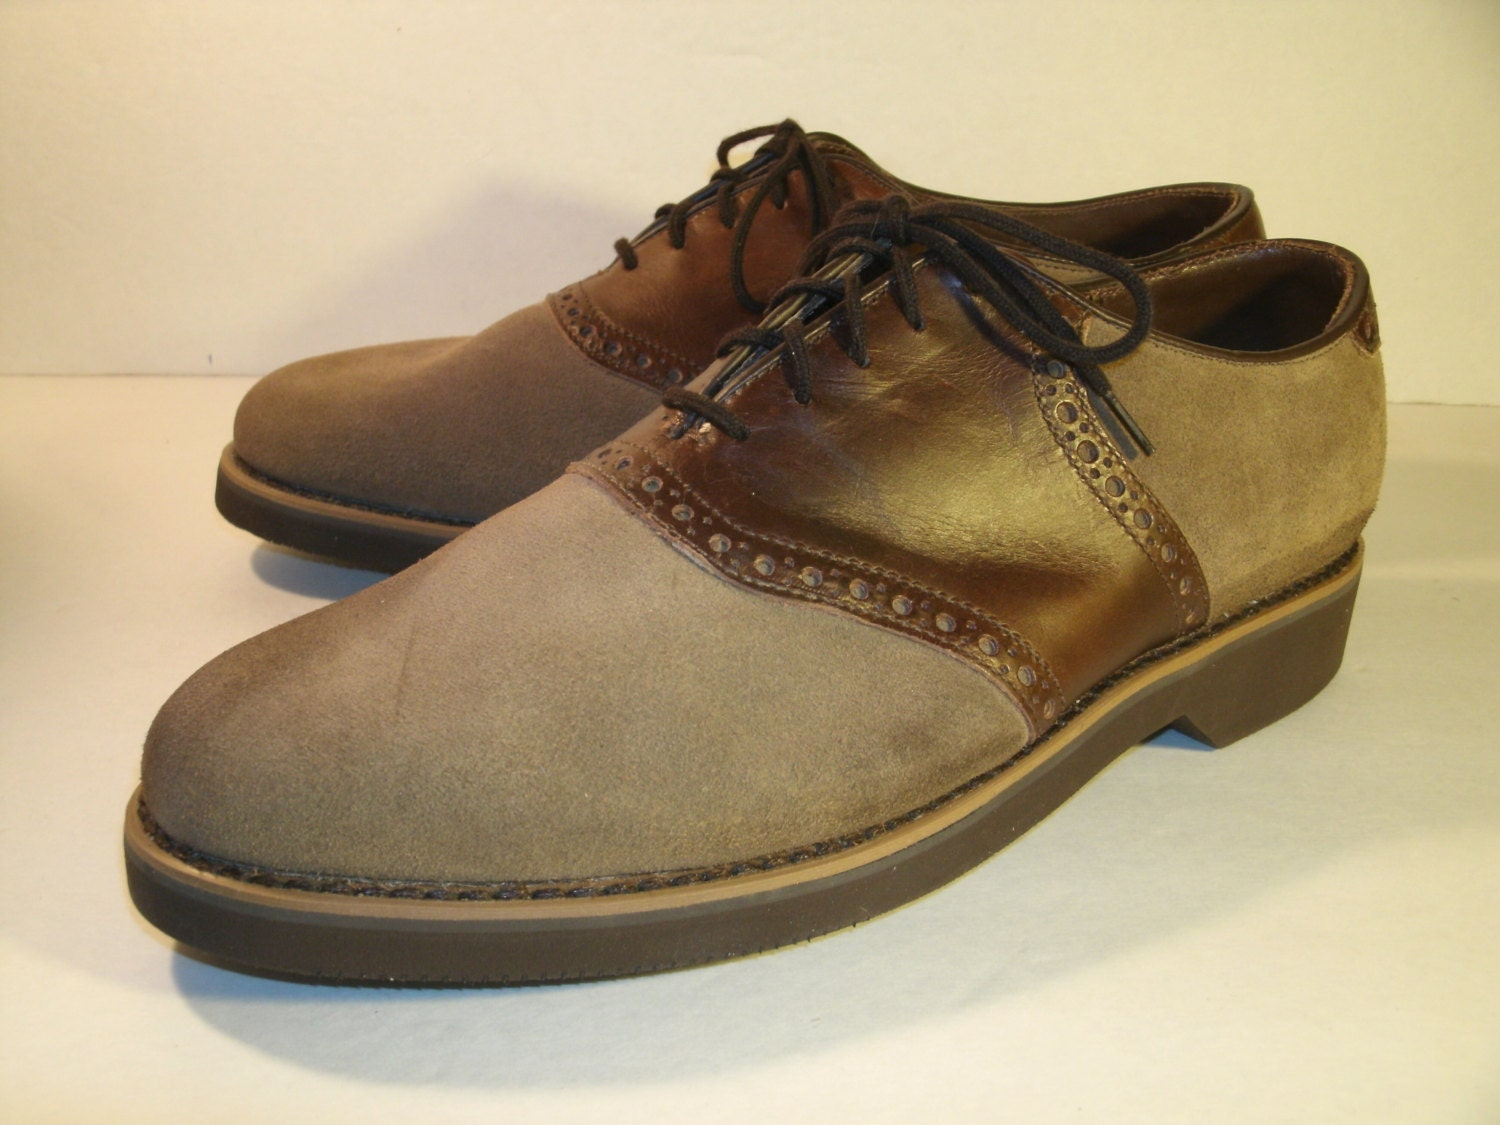 Dexter Suede Oxfords Tan Brown Leather Saddle Shoes Lined